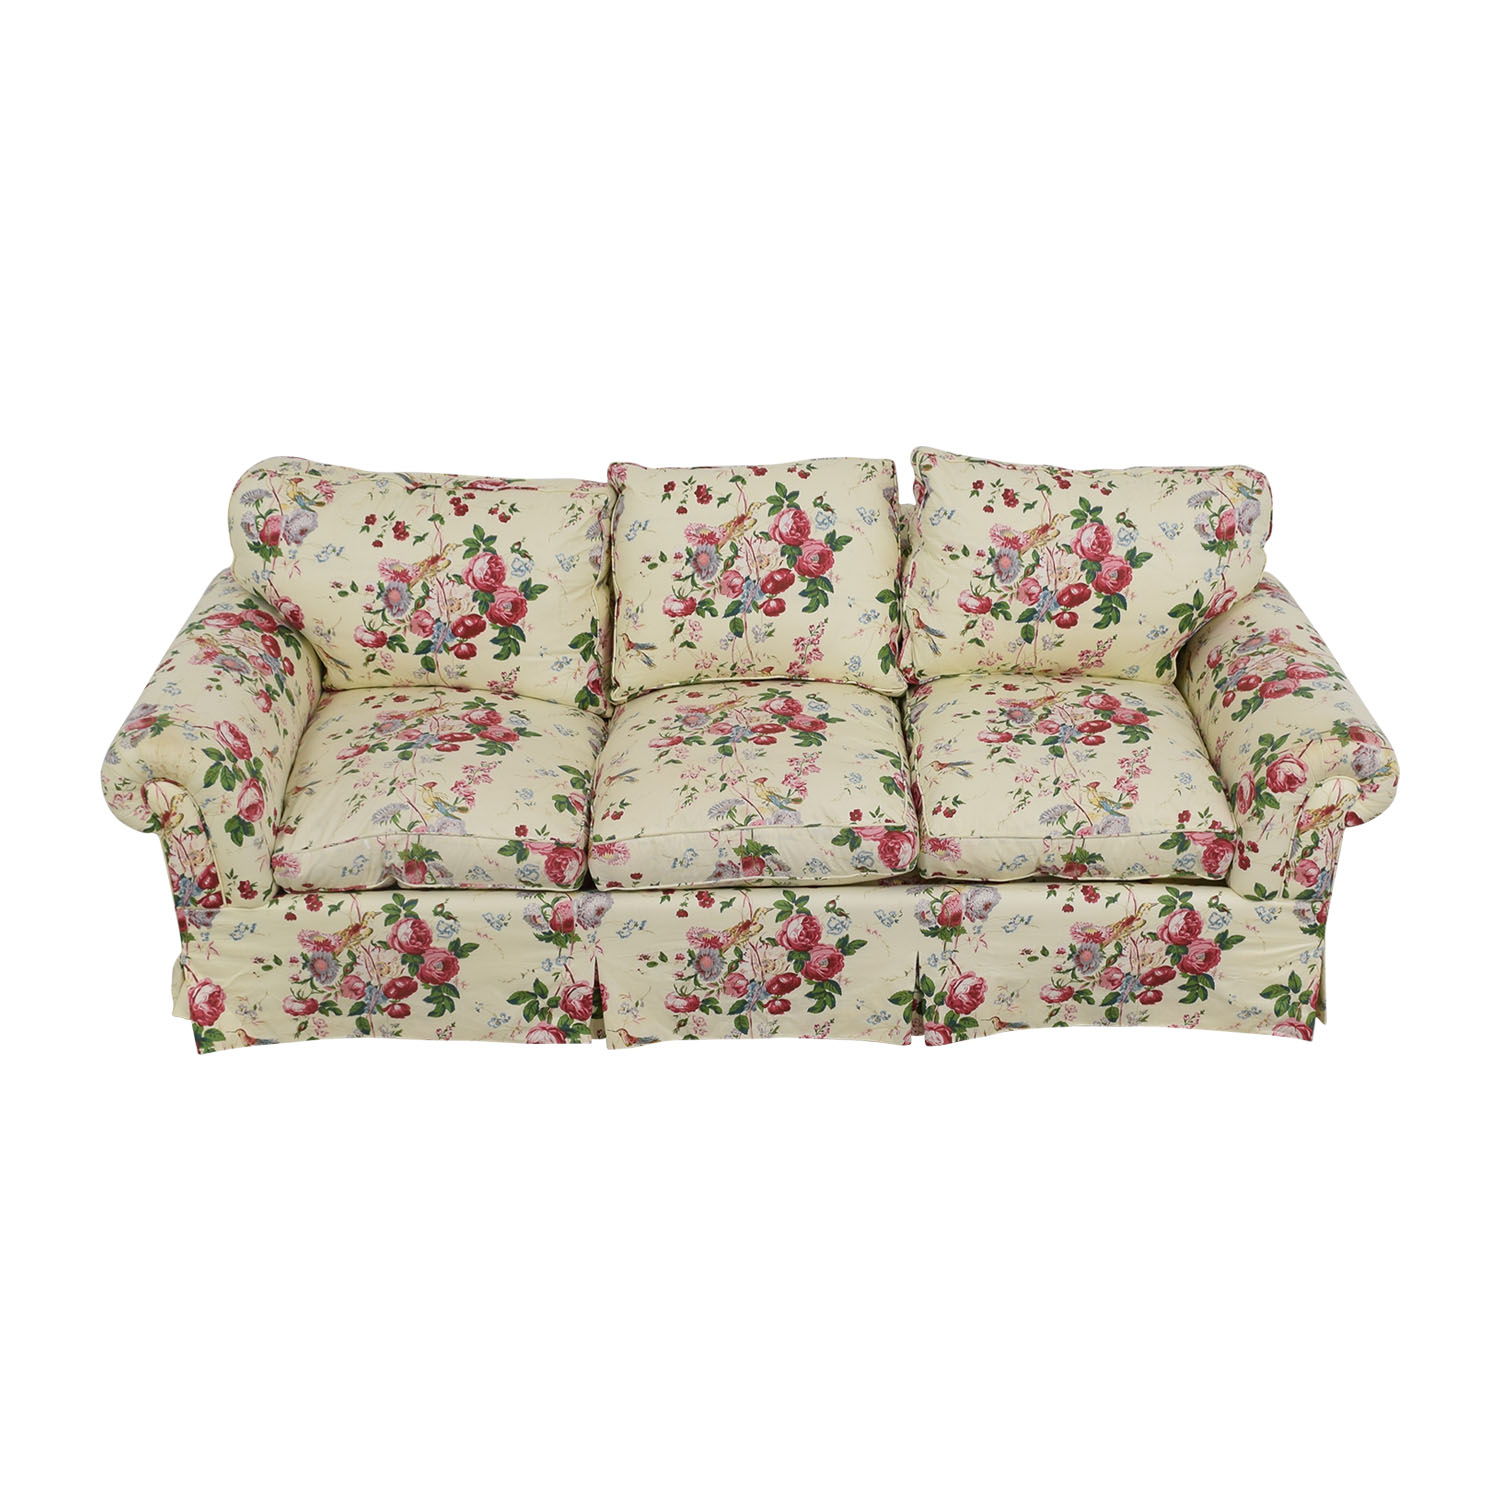 Floral on White Three-Cushion Sofa with Curved Arms / Sofas